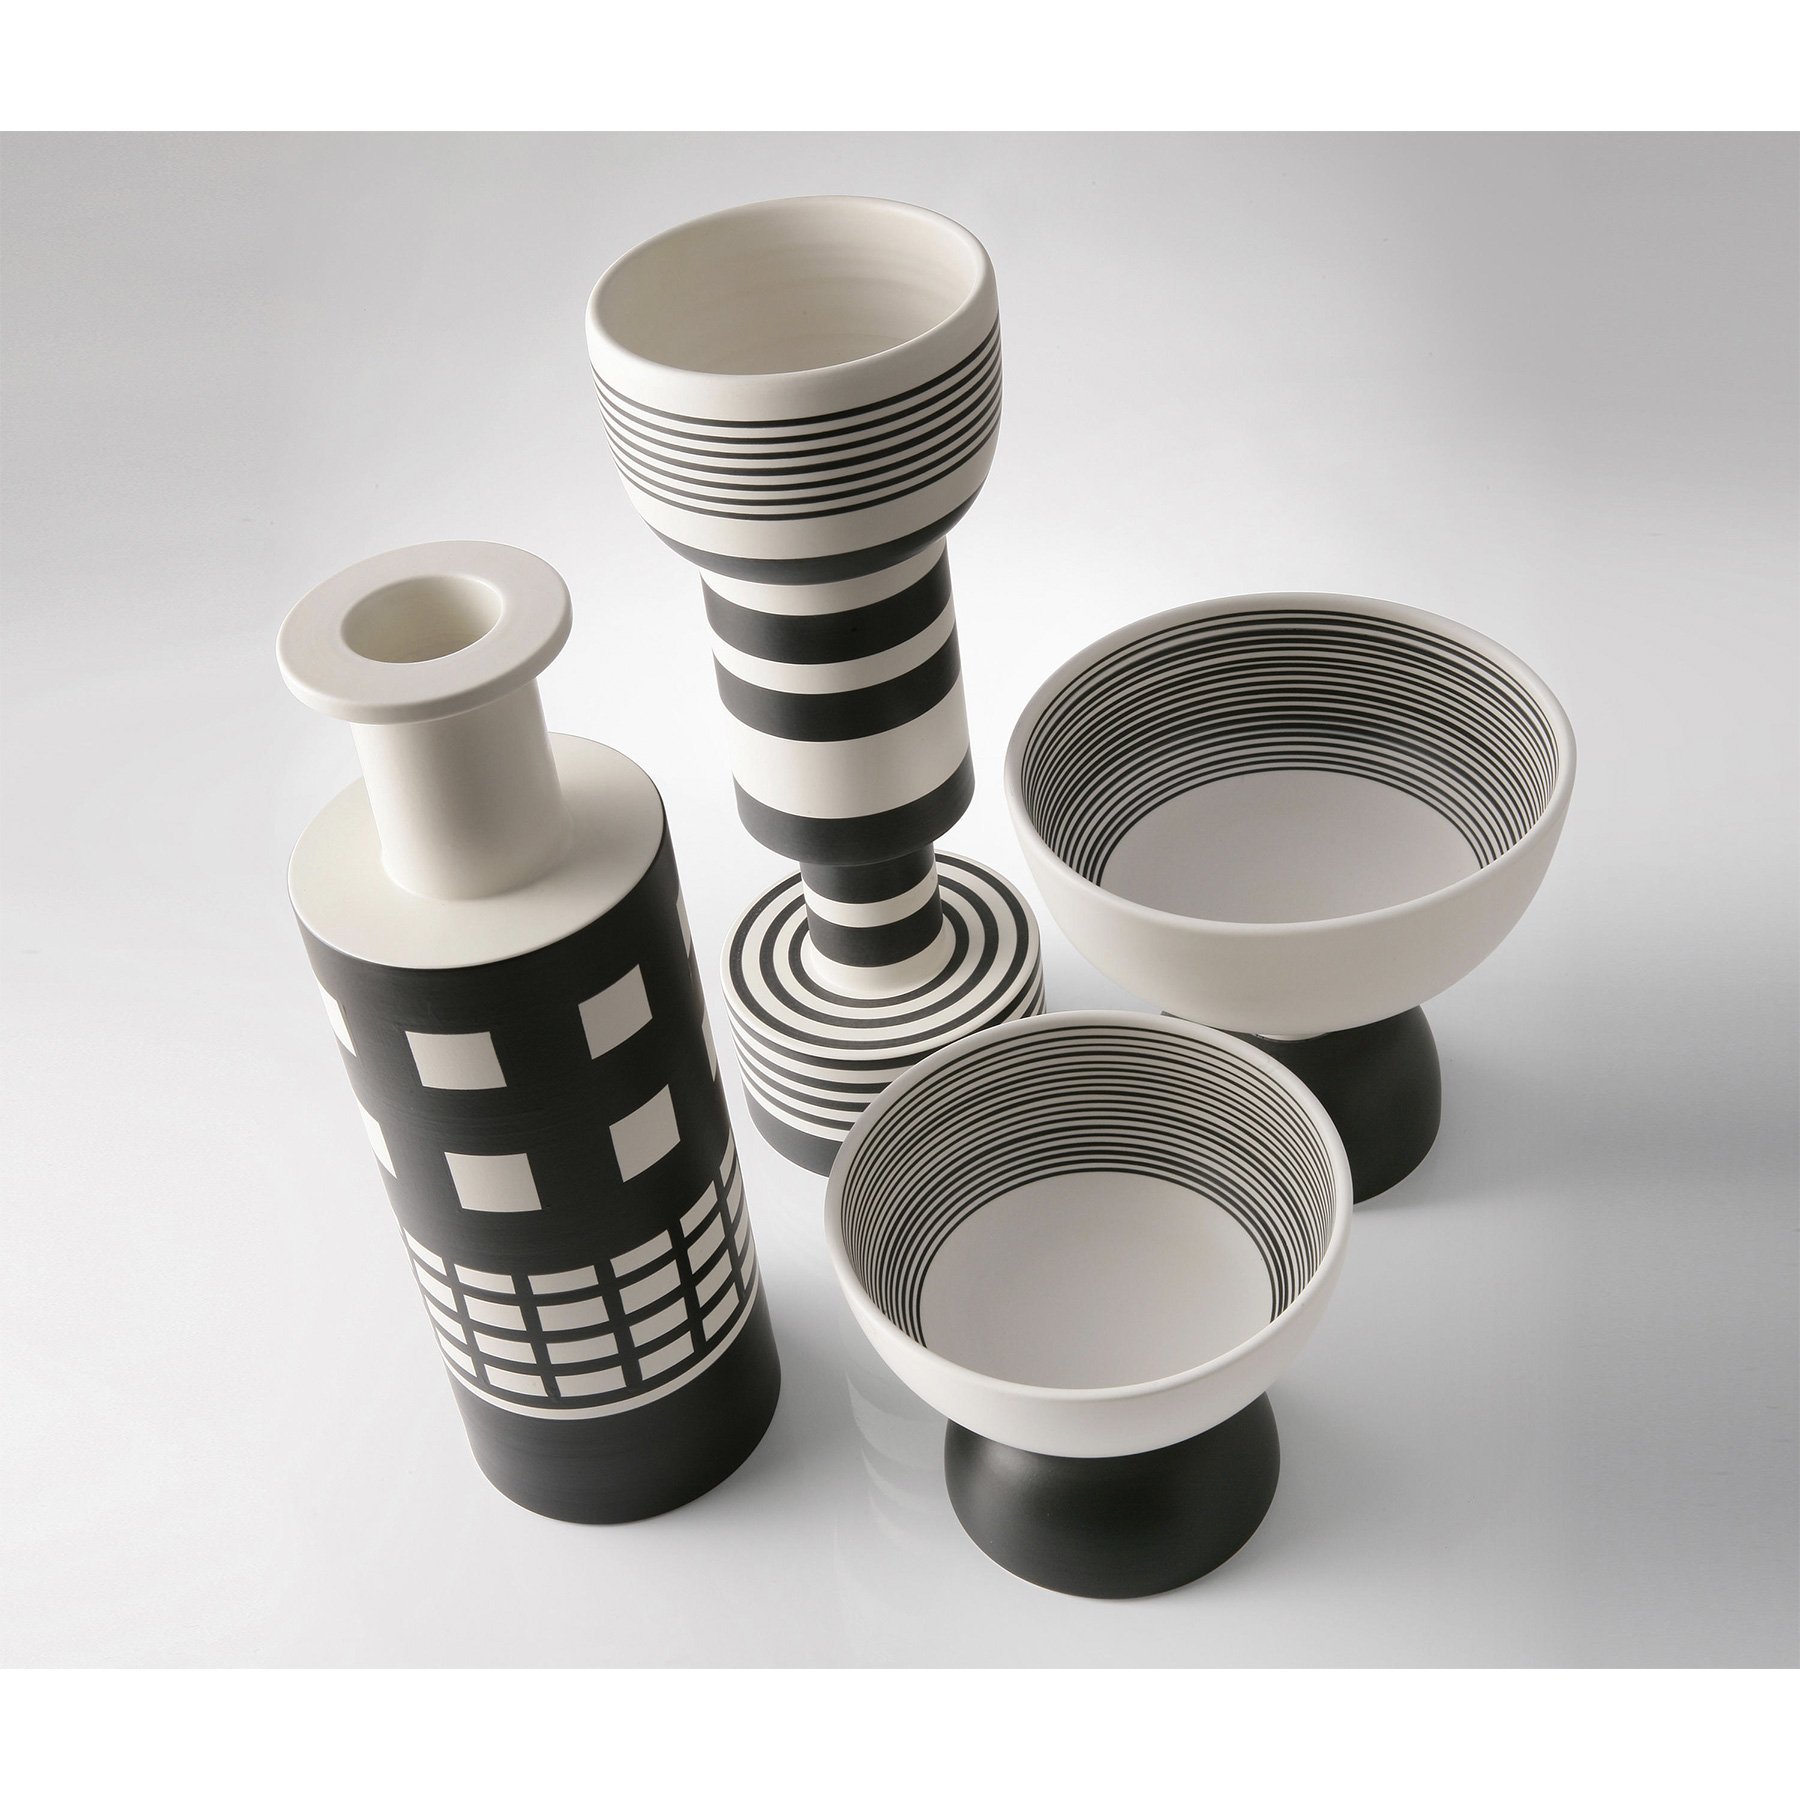 Goblet Tall Vase - Goblet vase B&W series. Hand-turned in white clay. Two-tone matt black and white glaze. This elegant vase was designed by famous Italian architect Ettore Sottsass in 1962. It is in white clay and its geometric shape with a white finish is adorned with a series of parallel black lines of different thickness, for a striking final result. | Matter of Stuff